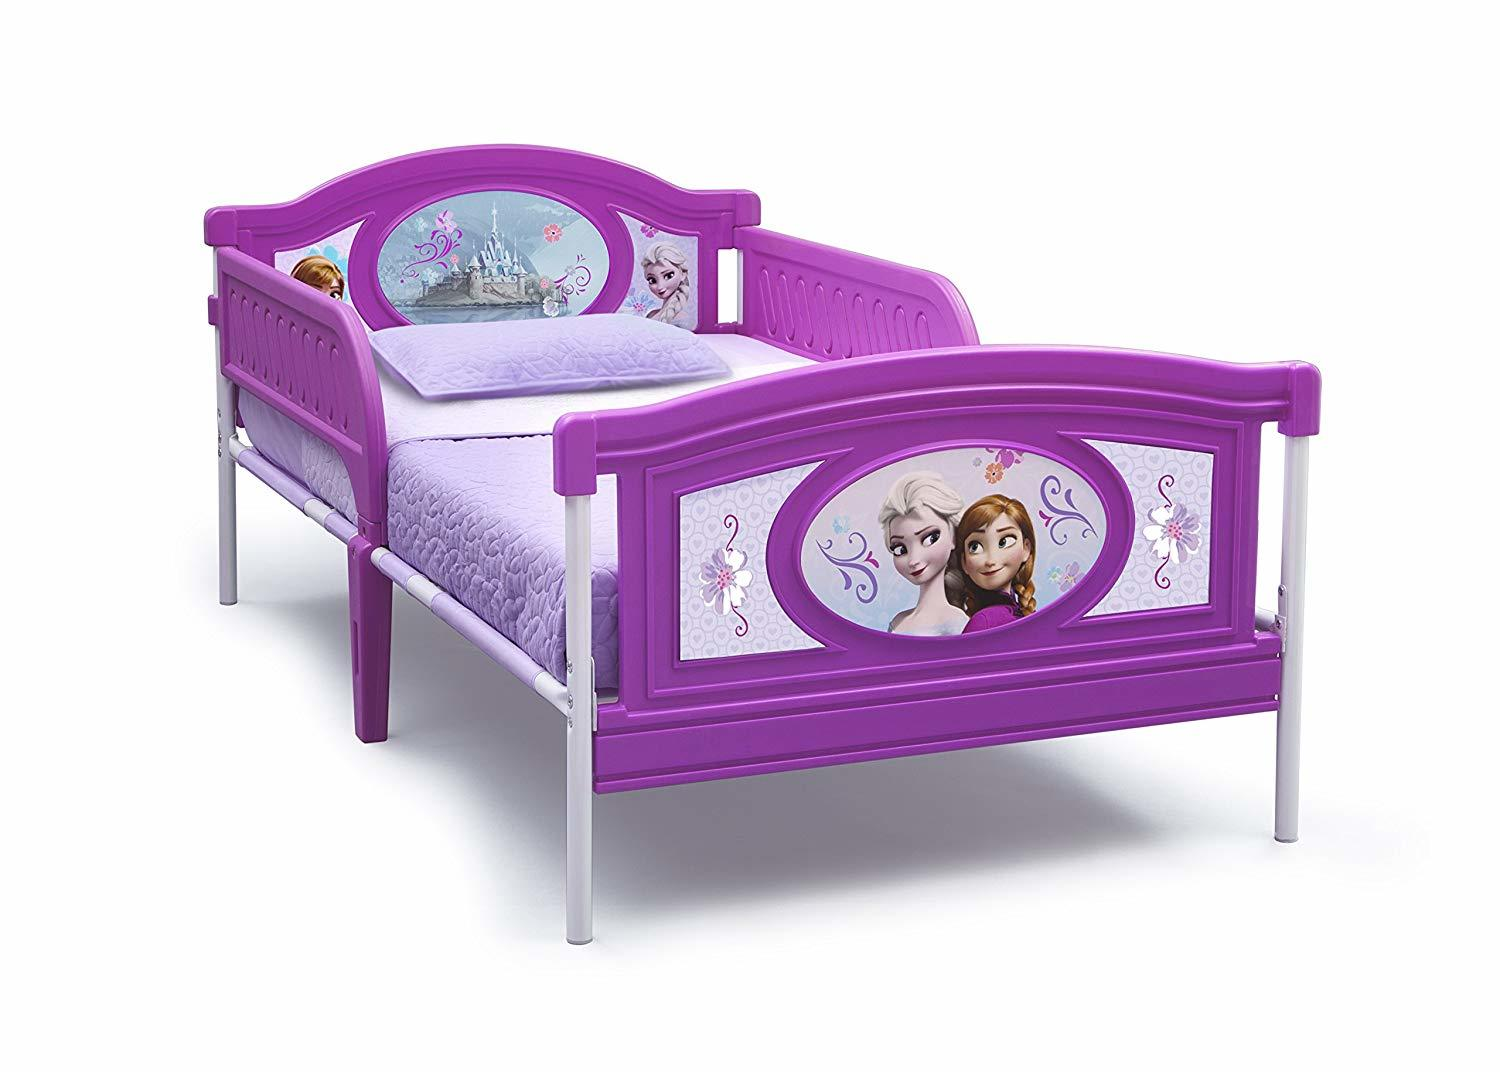 Best Twin Bed for Toddlers